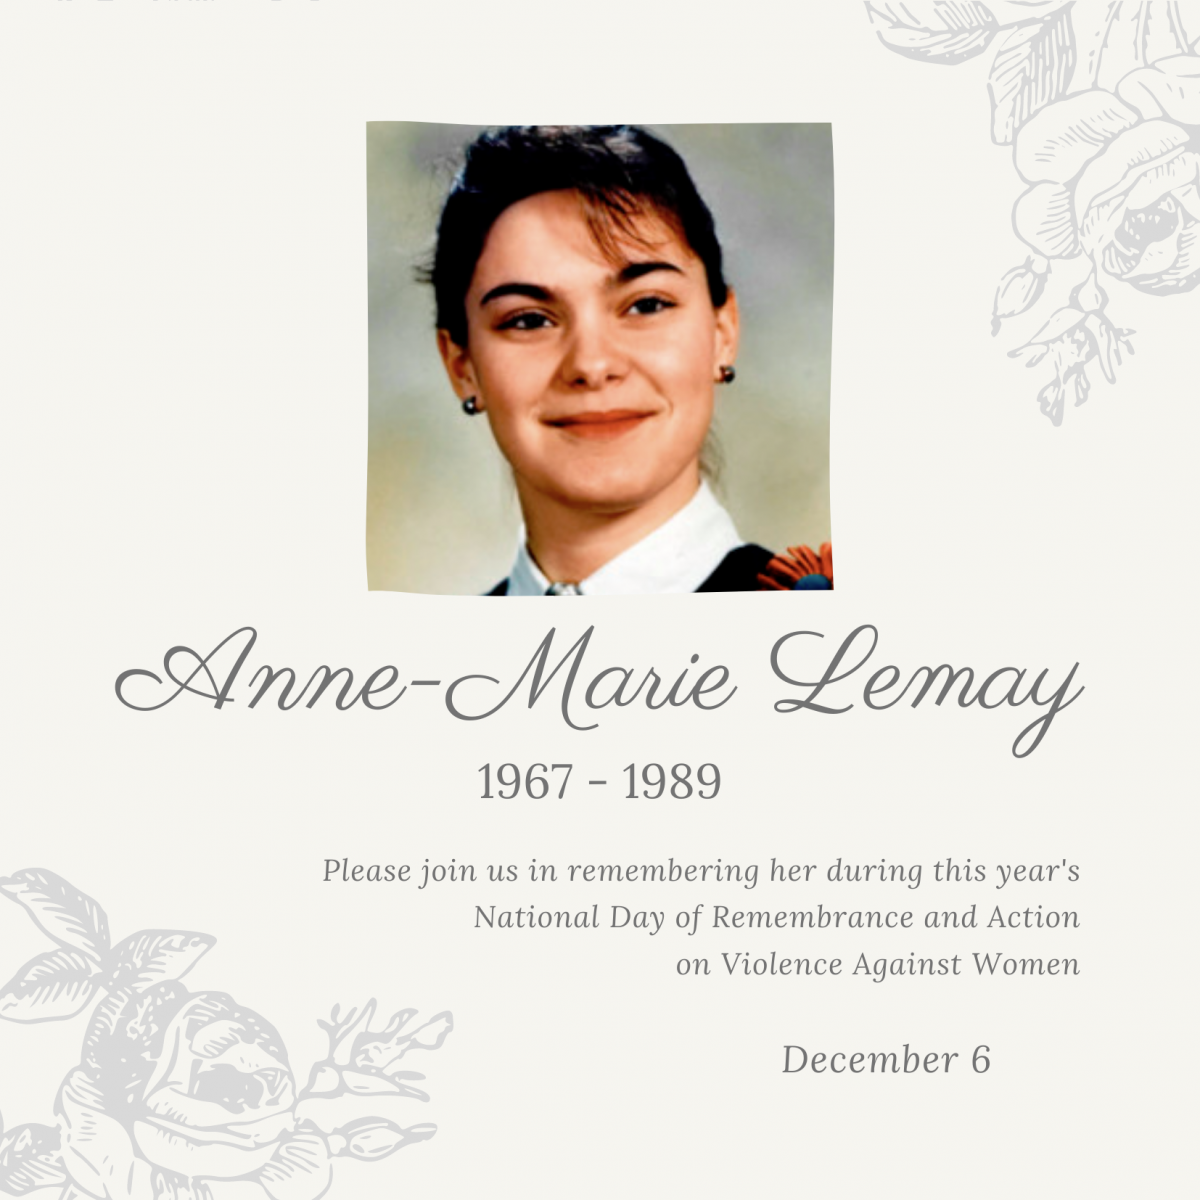 Anne-Marie Lemay. 1967 to 1989